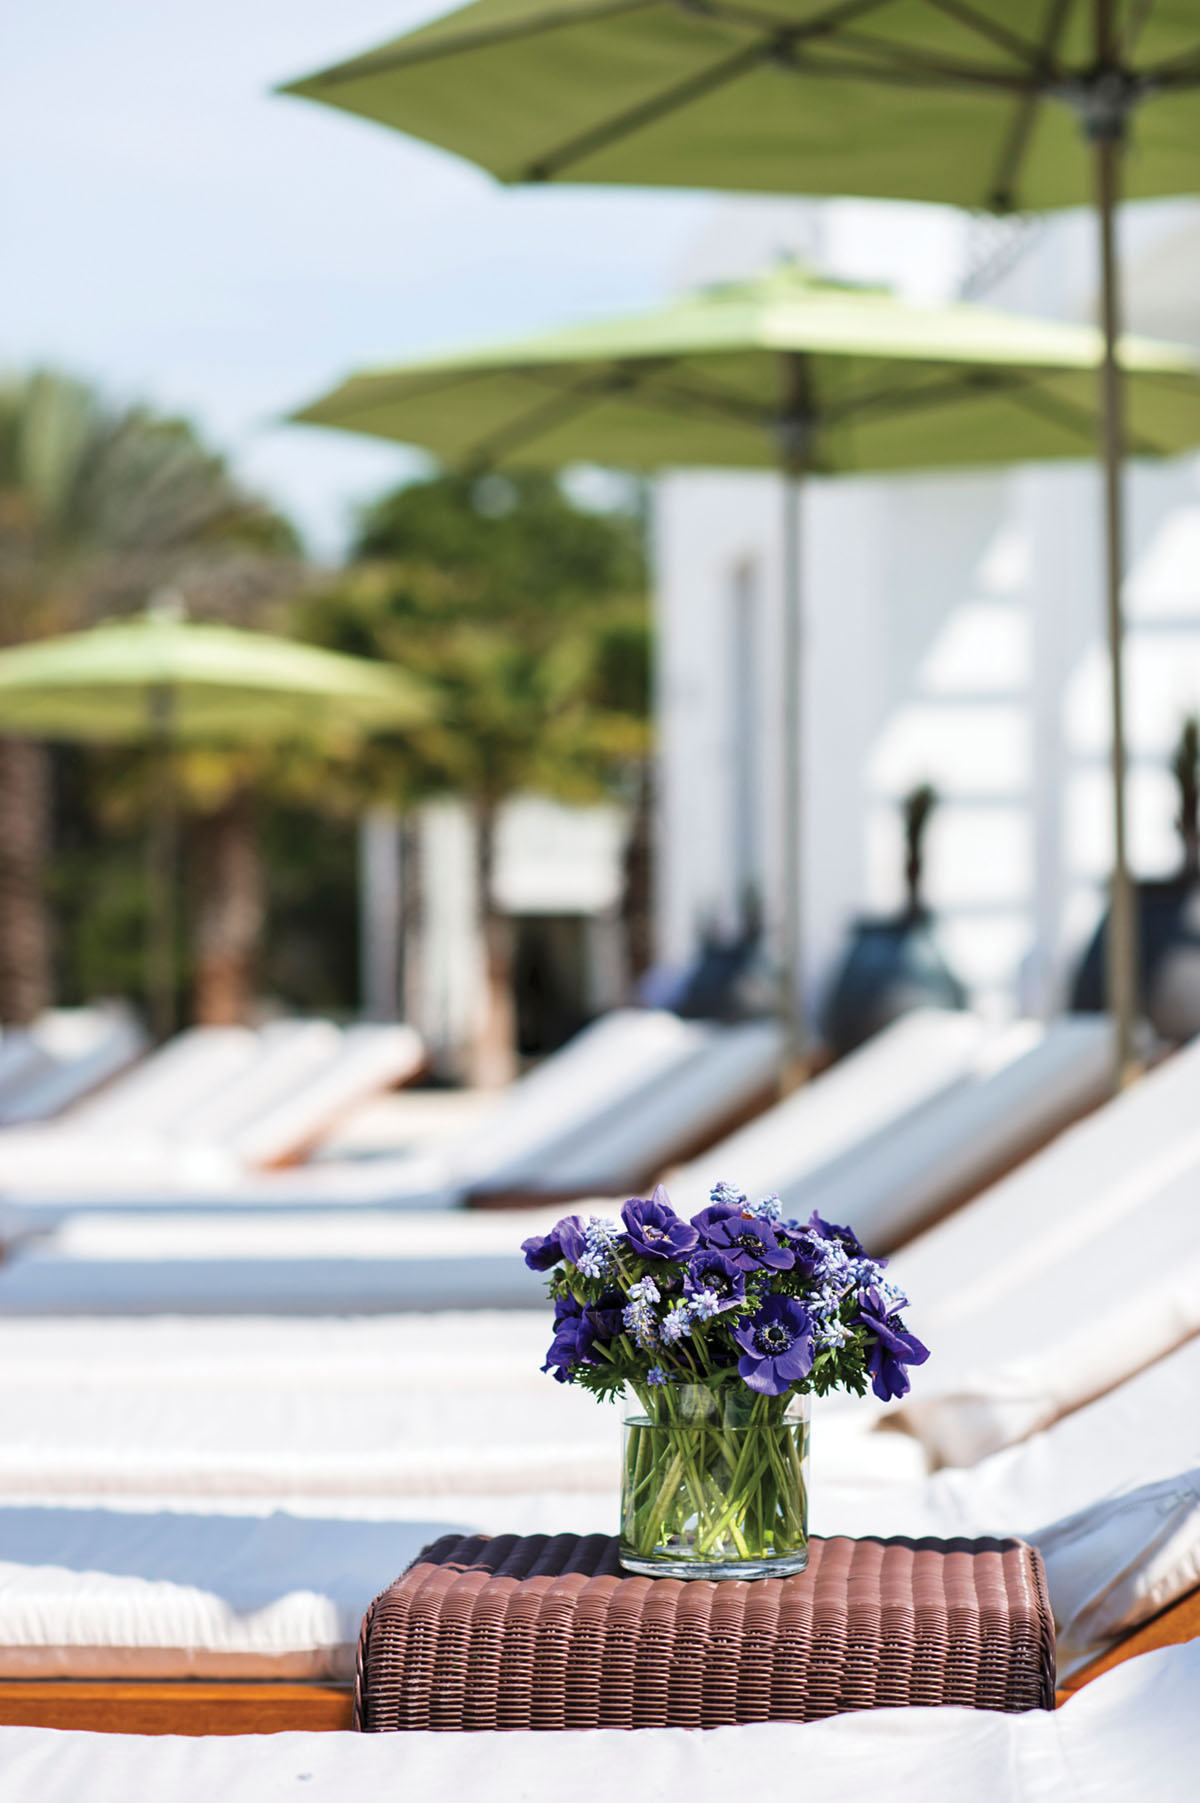 purple flower arrangement set on a woven side table beside a row of chaise lounges shaded by green umbrellas by the pool